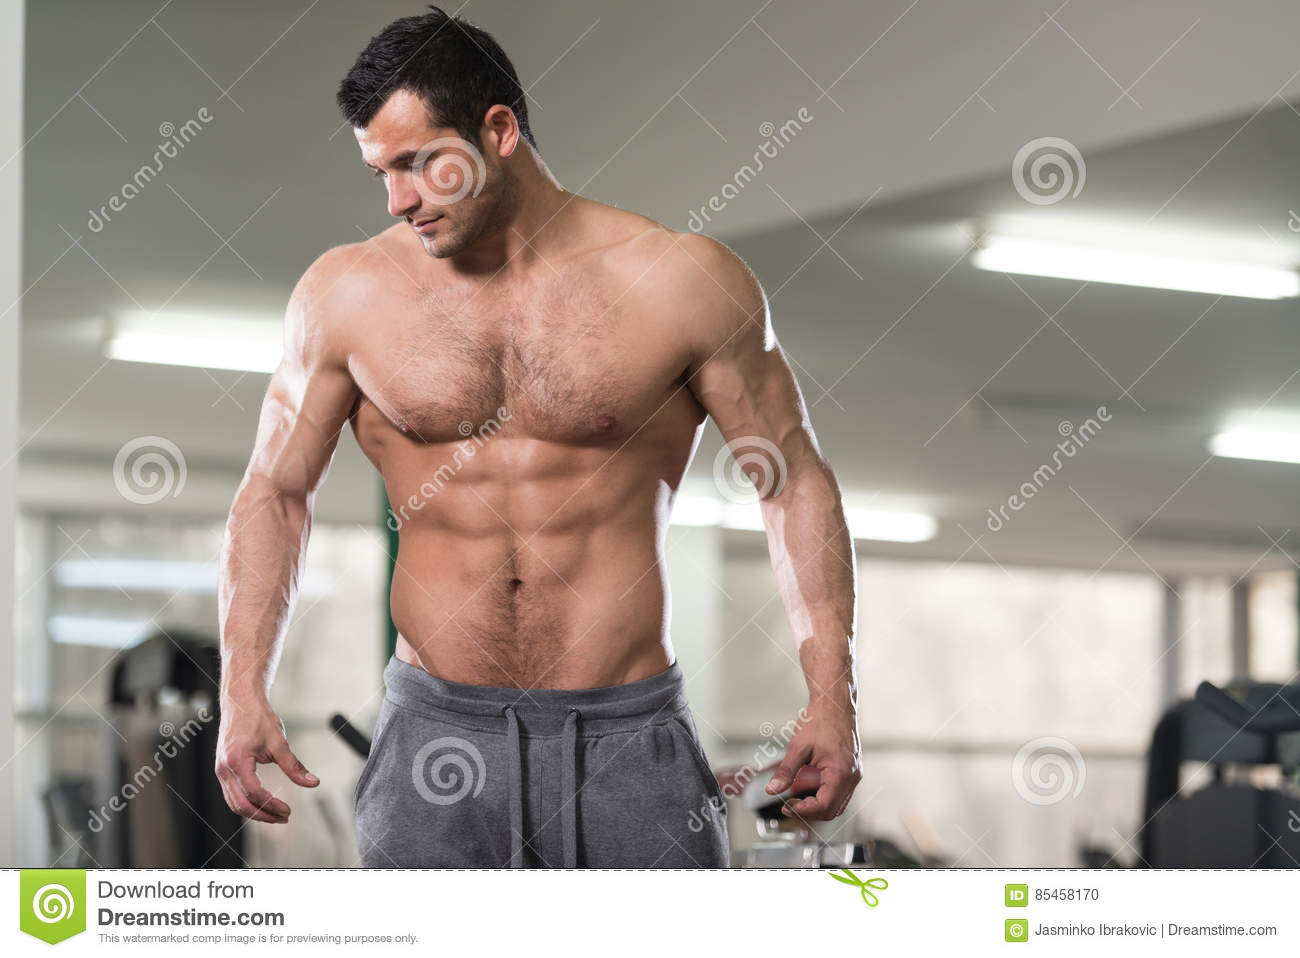 fat hairy people nude - Portrait Of A Physically Fit Muscular Hairy Man. Hairy Handsome Young Man  Standing Strong In